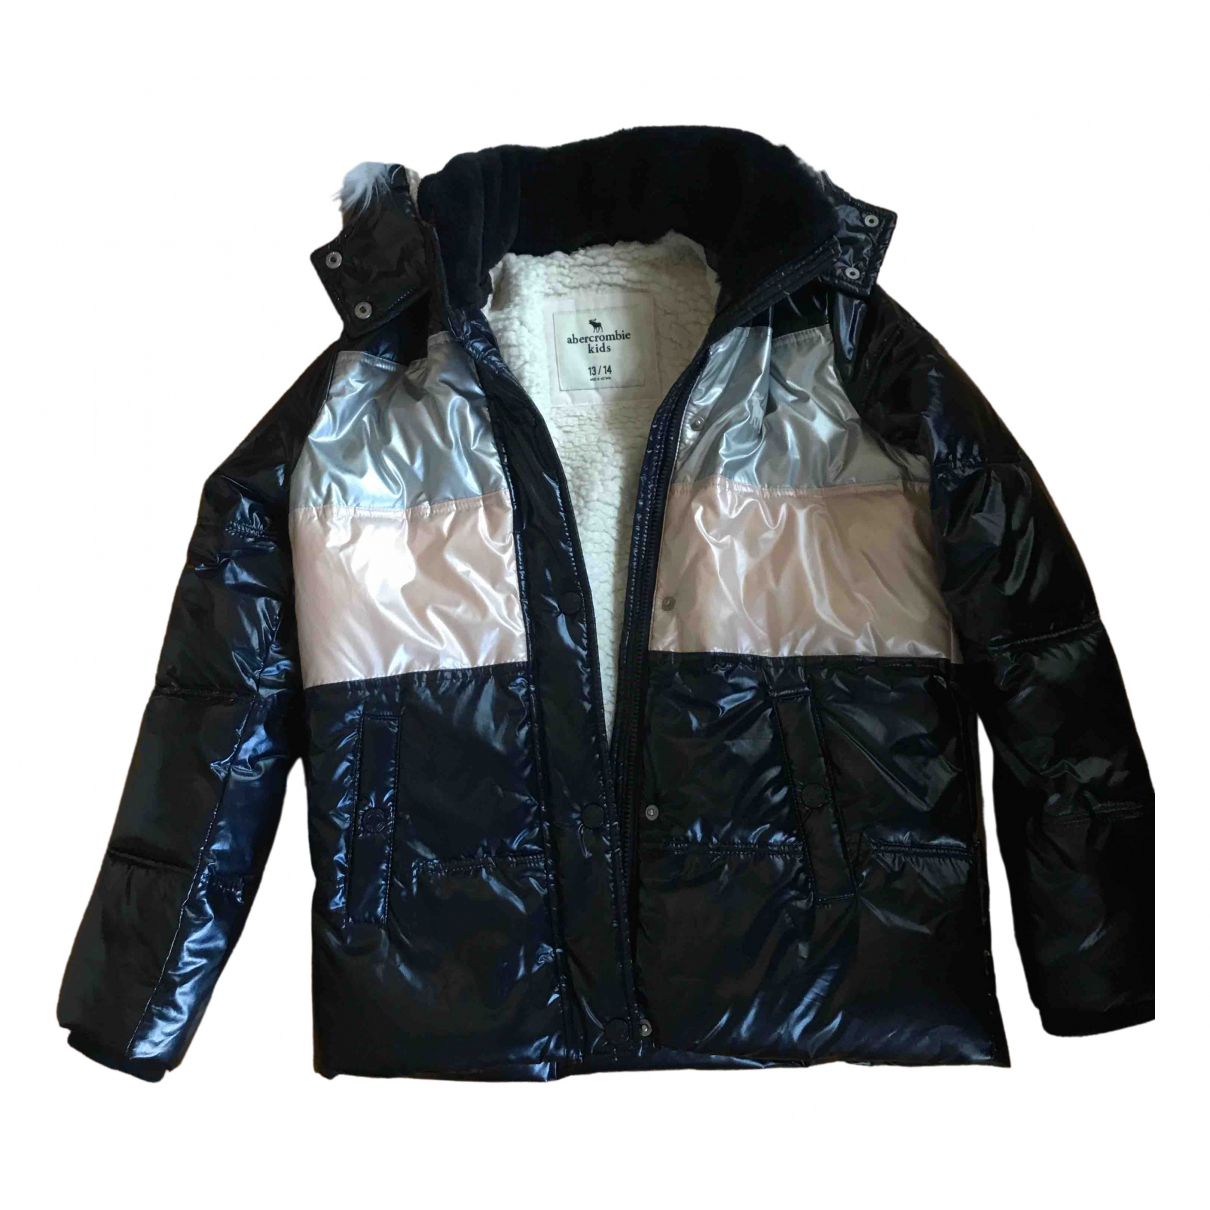 Abercrombie & Fitch \N Blue jacket & coat for Kids 14 years - S UK